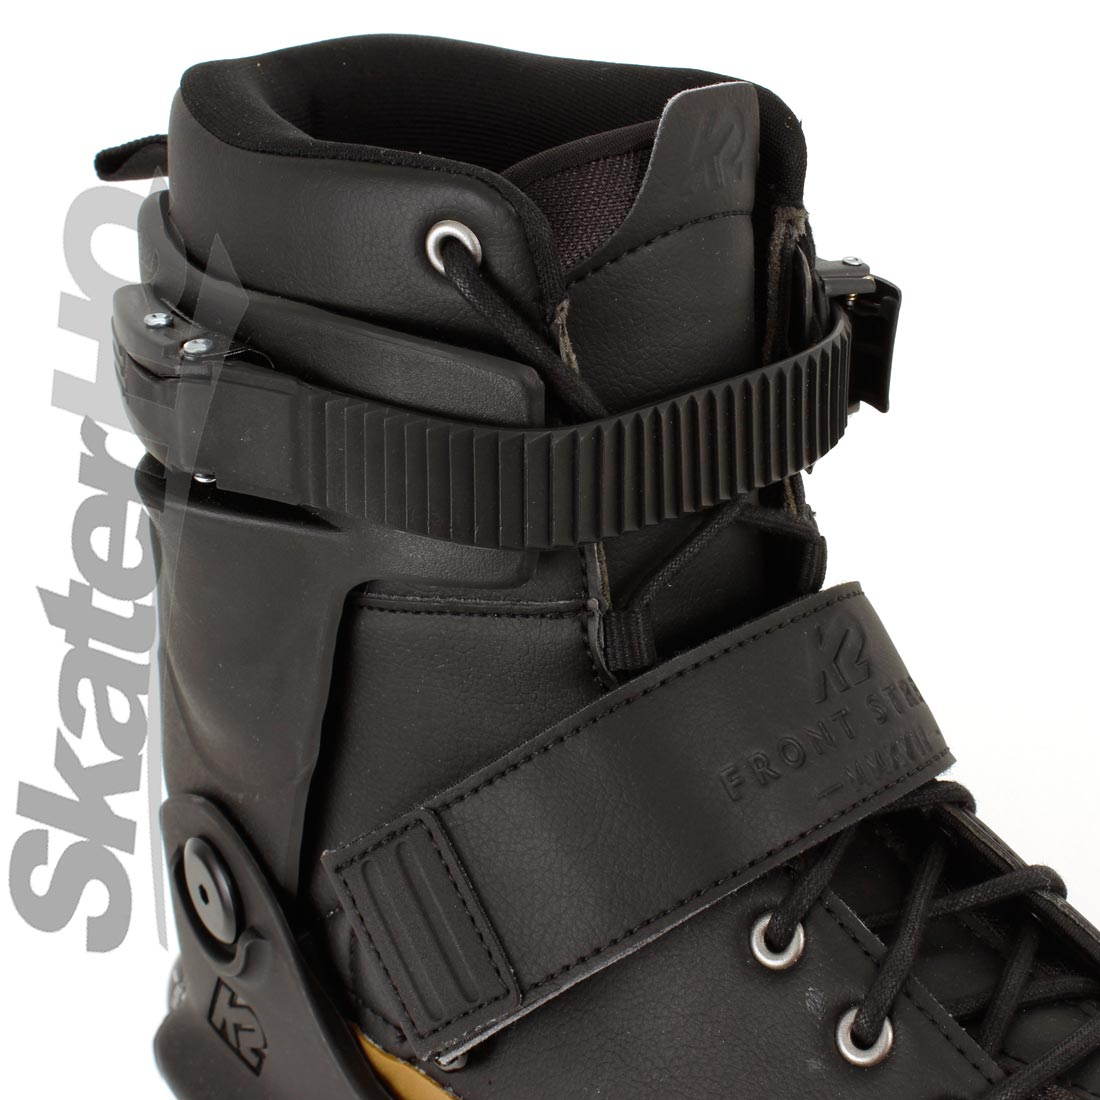 K2 Front Street 11US/29cm - Black/Gold